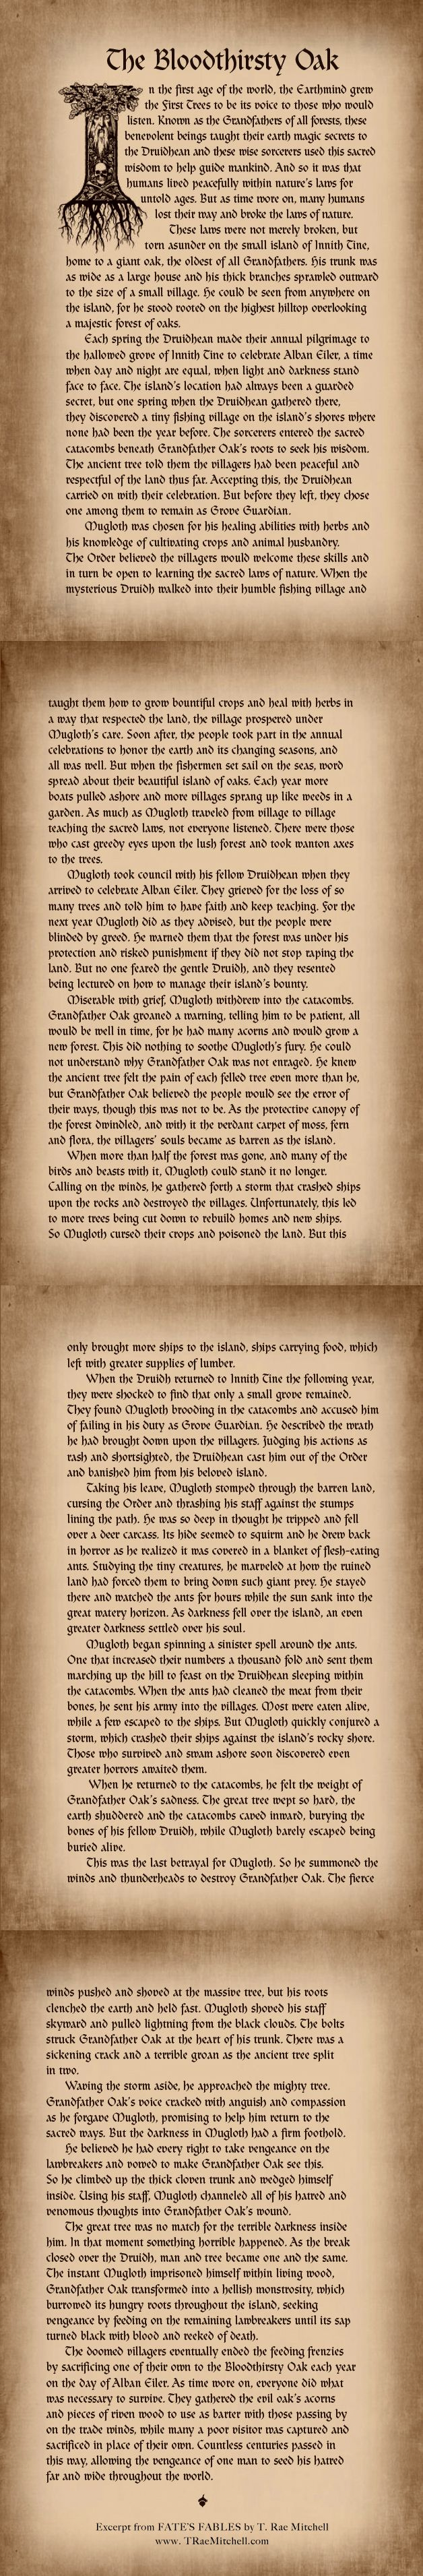 THE BLOODTHIRSTY OAK is the eighth and final fable in the fantasy novel, FATE'S FABLES. The setting is on a once lush island, now barren and inhabited by the darkness that's been influencing Finn. Together, Fate and Finn must confront this faceless evil once and for all to win their freedom from the Book of Fables. The only problem is, an ancient god has other plans. Will they ever escape? Read FATE'S FABLES for FREE @ traemitchell.com